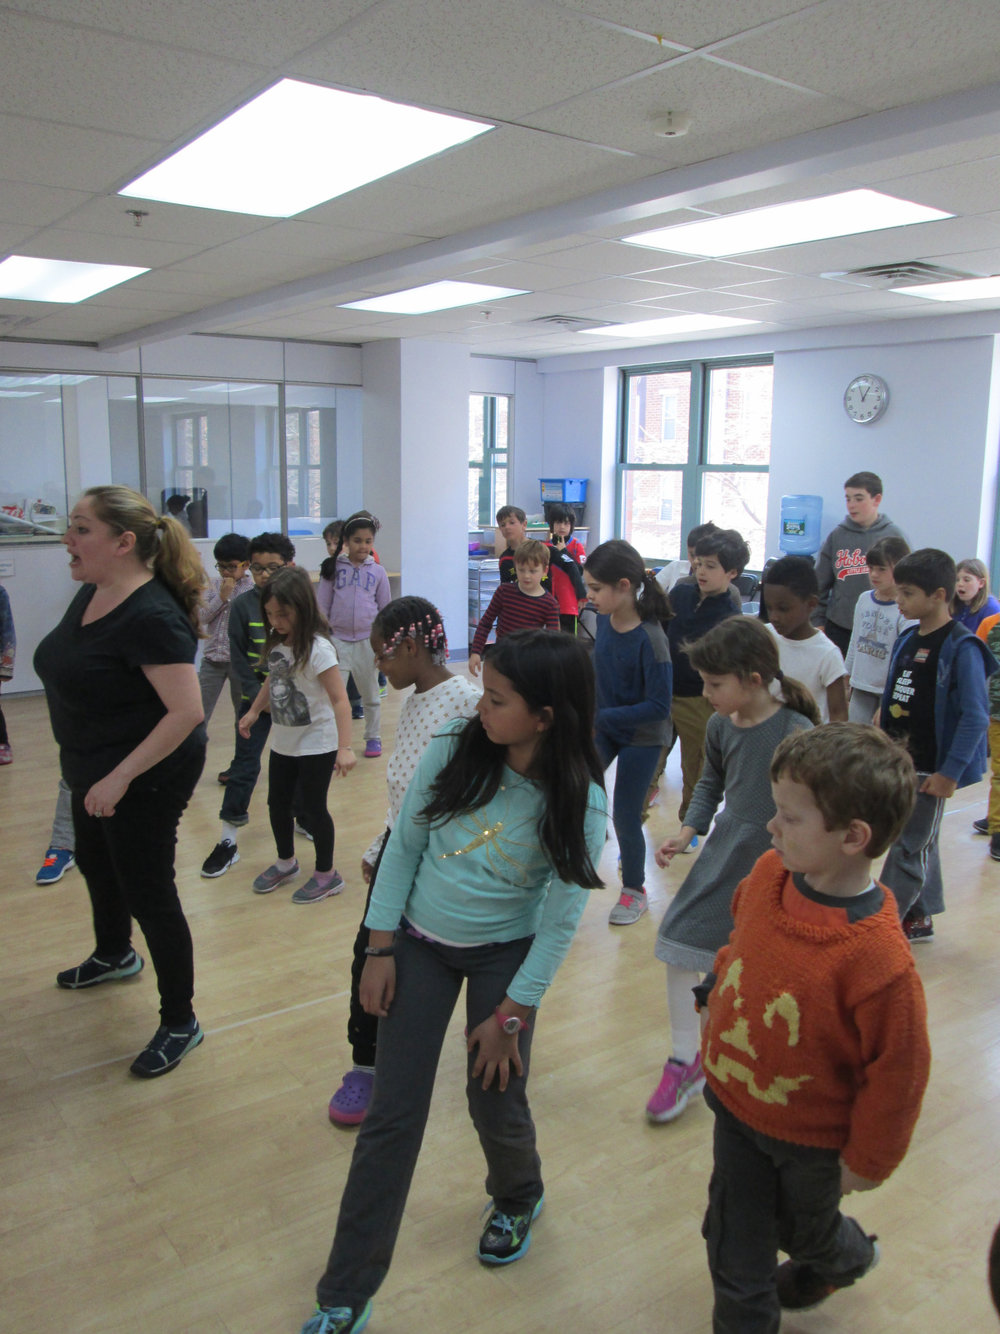 The Lower Elementary East Students were excited to be rehearsing for this year's musical production of  The Lion King !  In this captured moment, Ms. Cristina taught the students choreography for the song  Hakuna Matata .